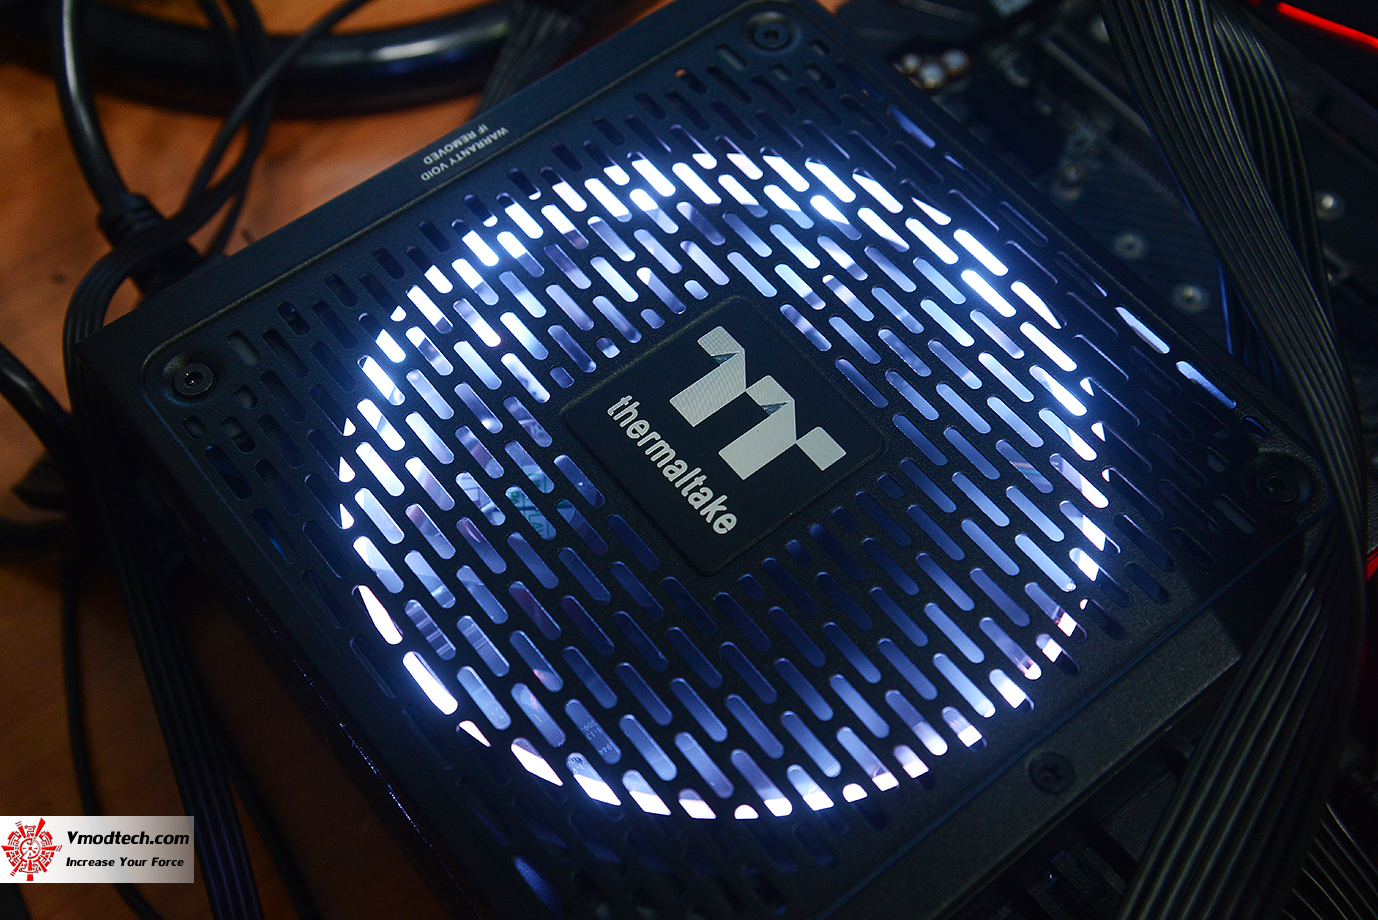 dsc 1940 Thermaltake Toughpower iRGB PLUS 1050W Platinum Review